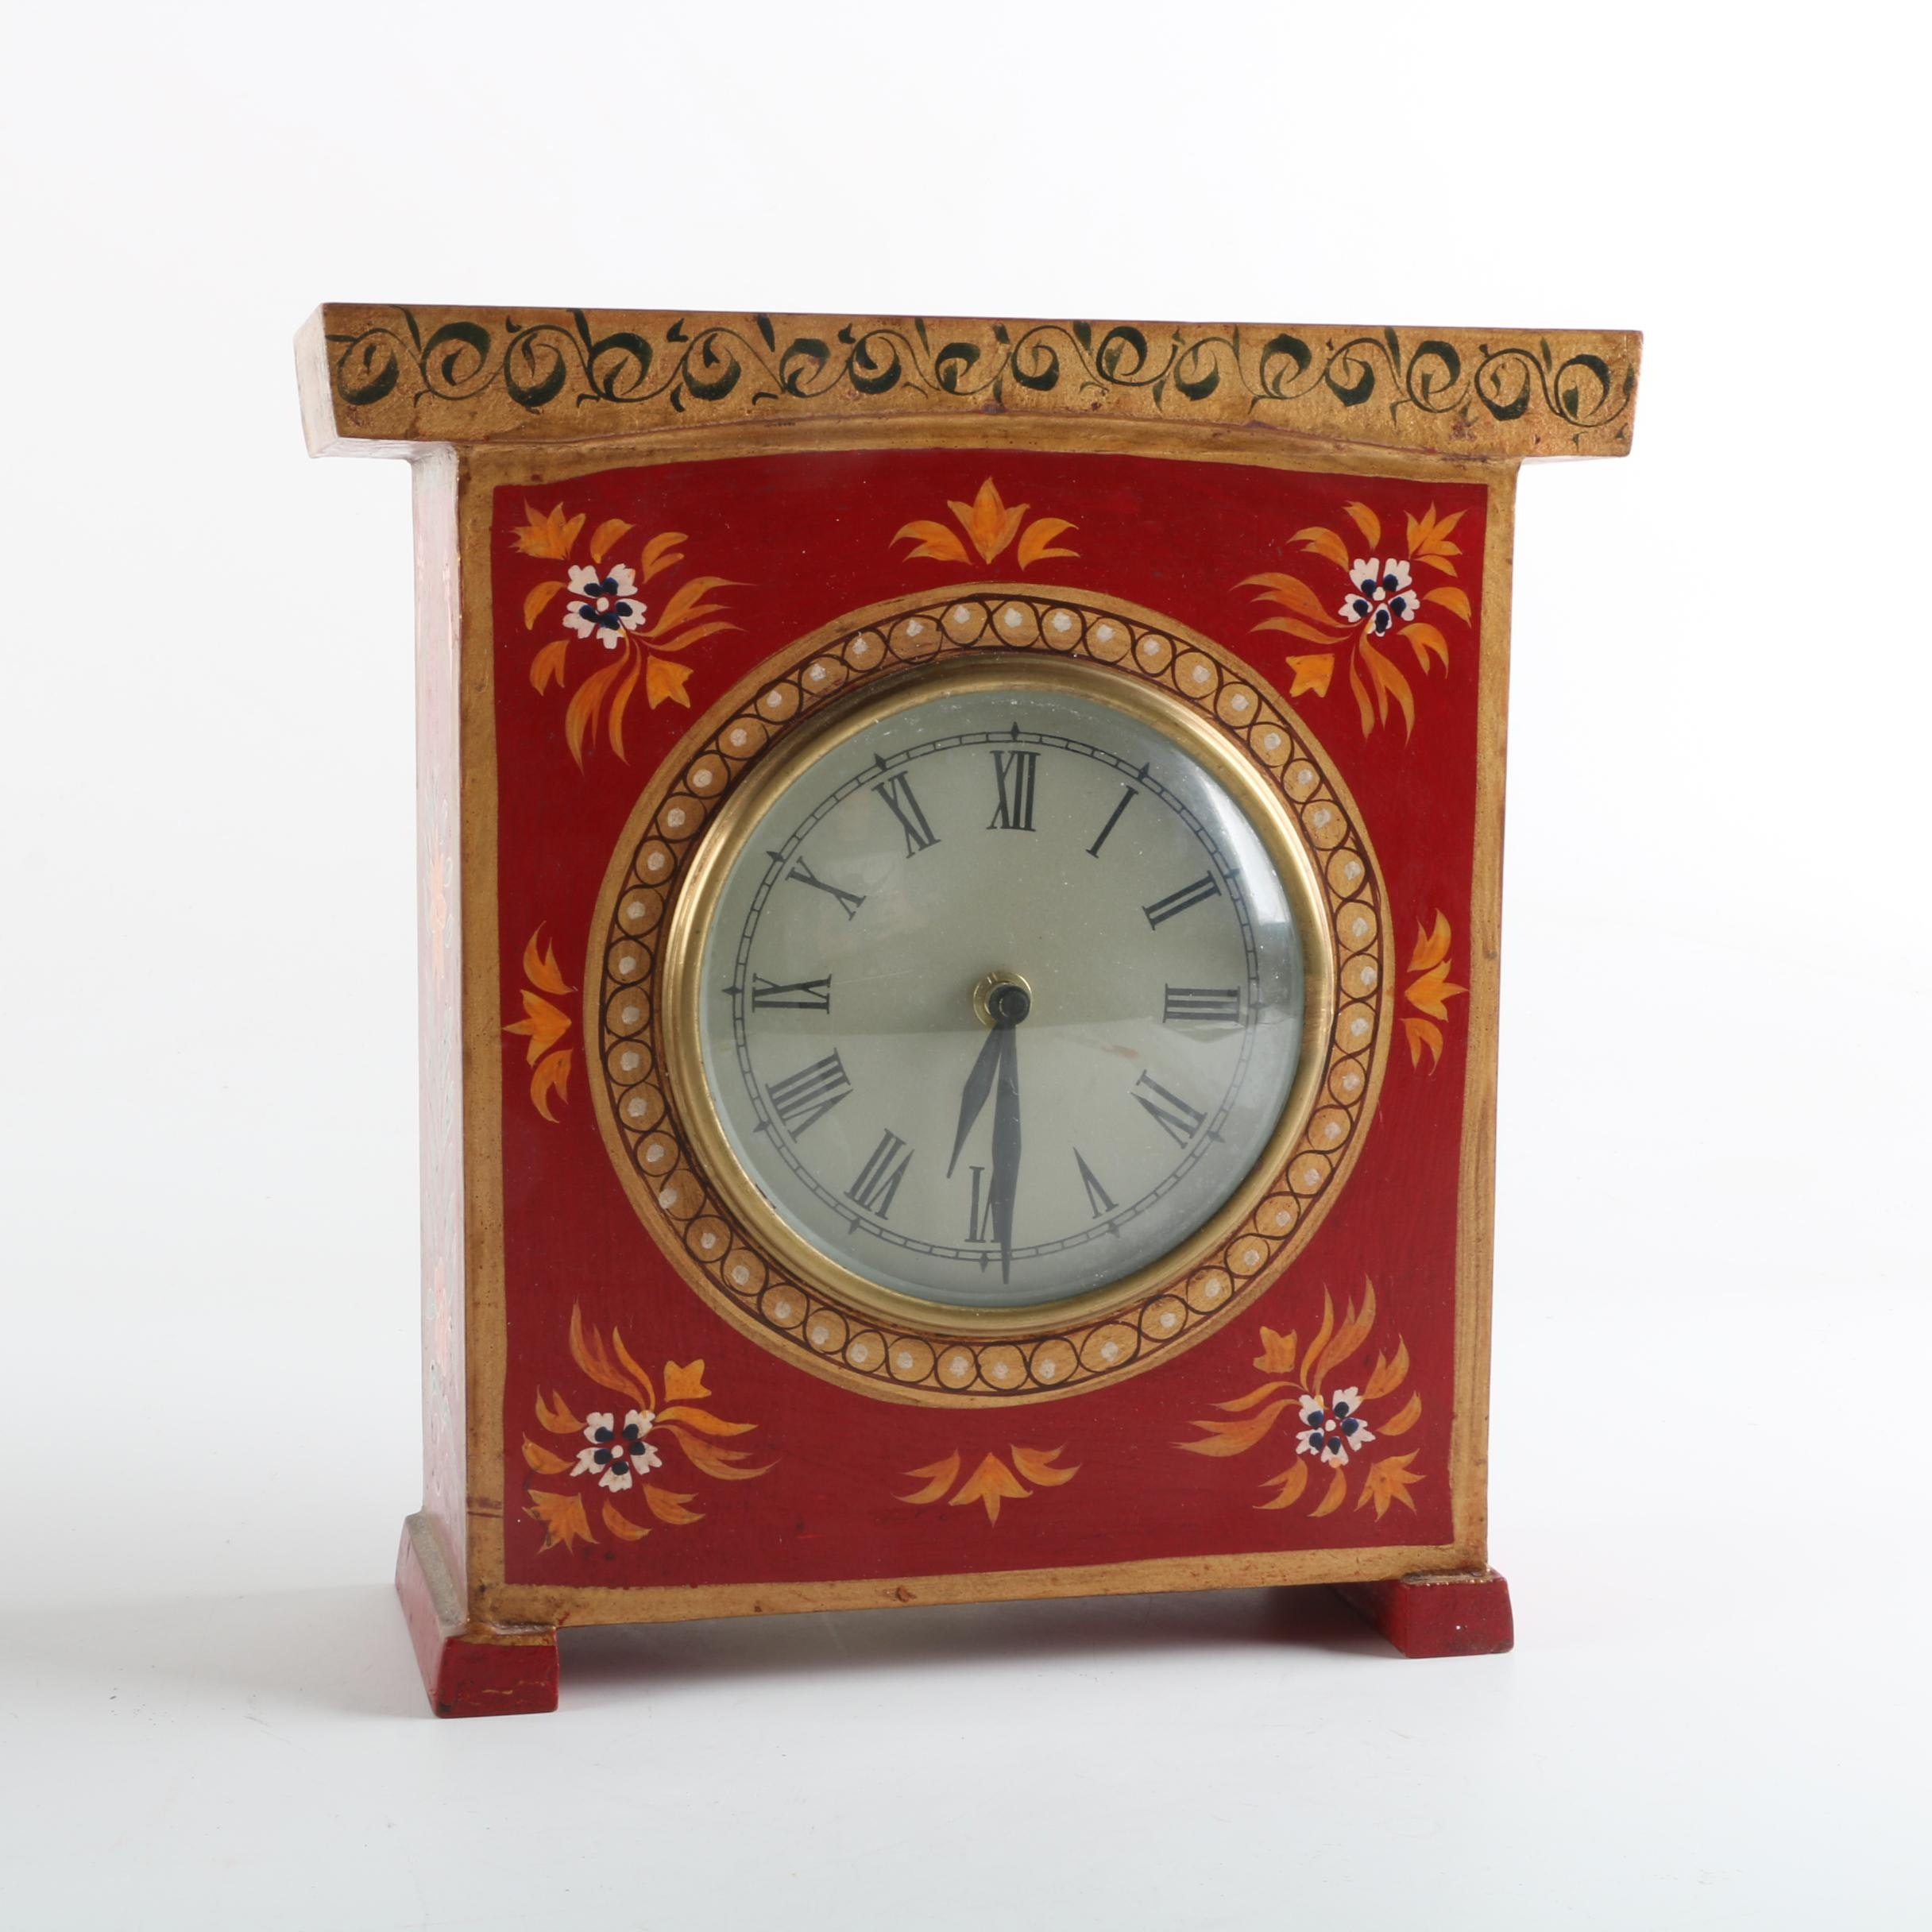 Global Bazaar Hand-Painted Mantel Clock